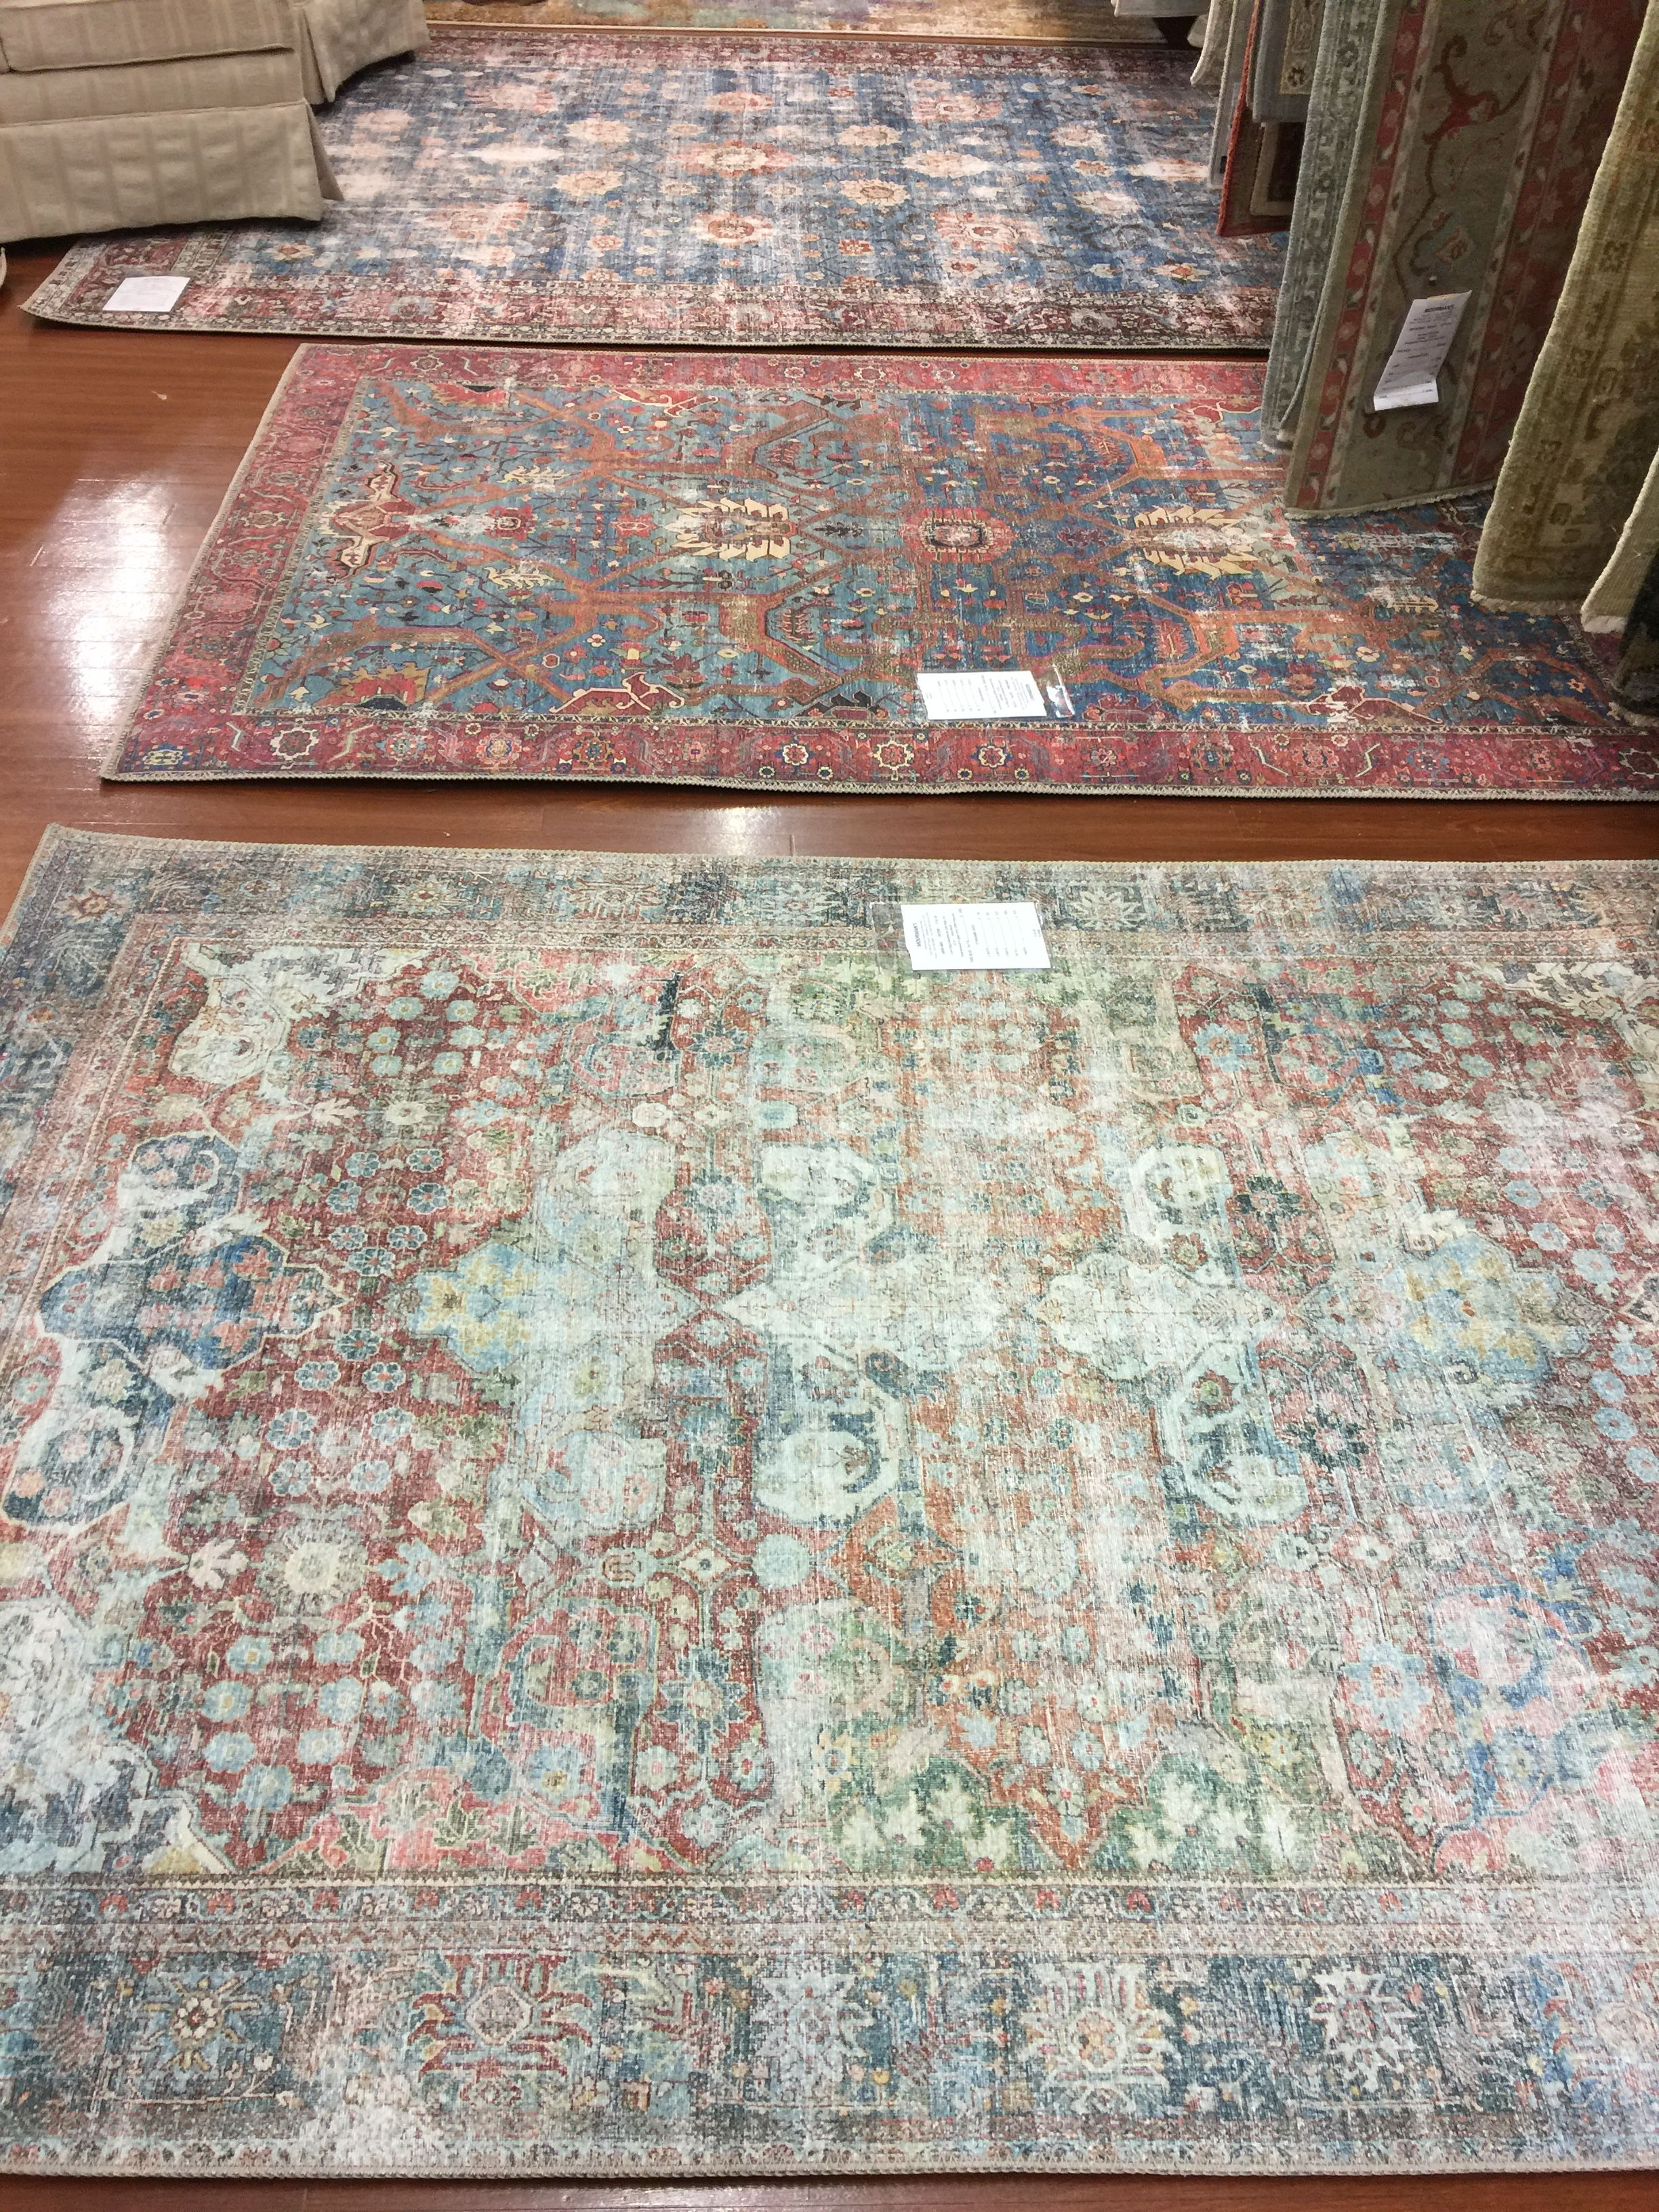 Incredibly Authentic Antique Look Area Rugs At Ridiculously Low